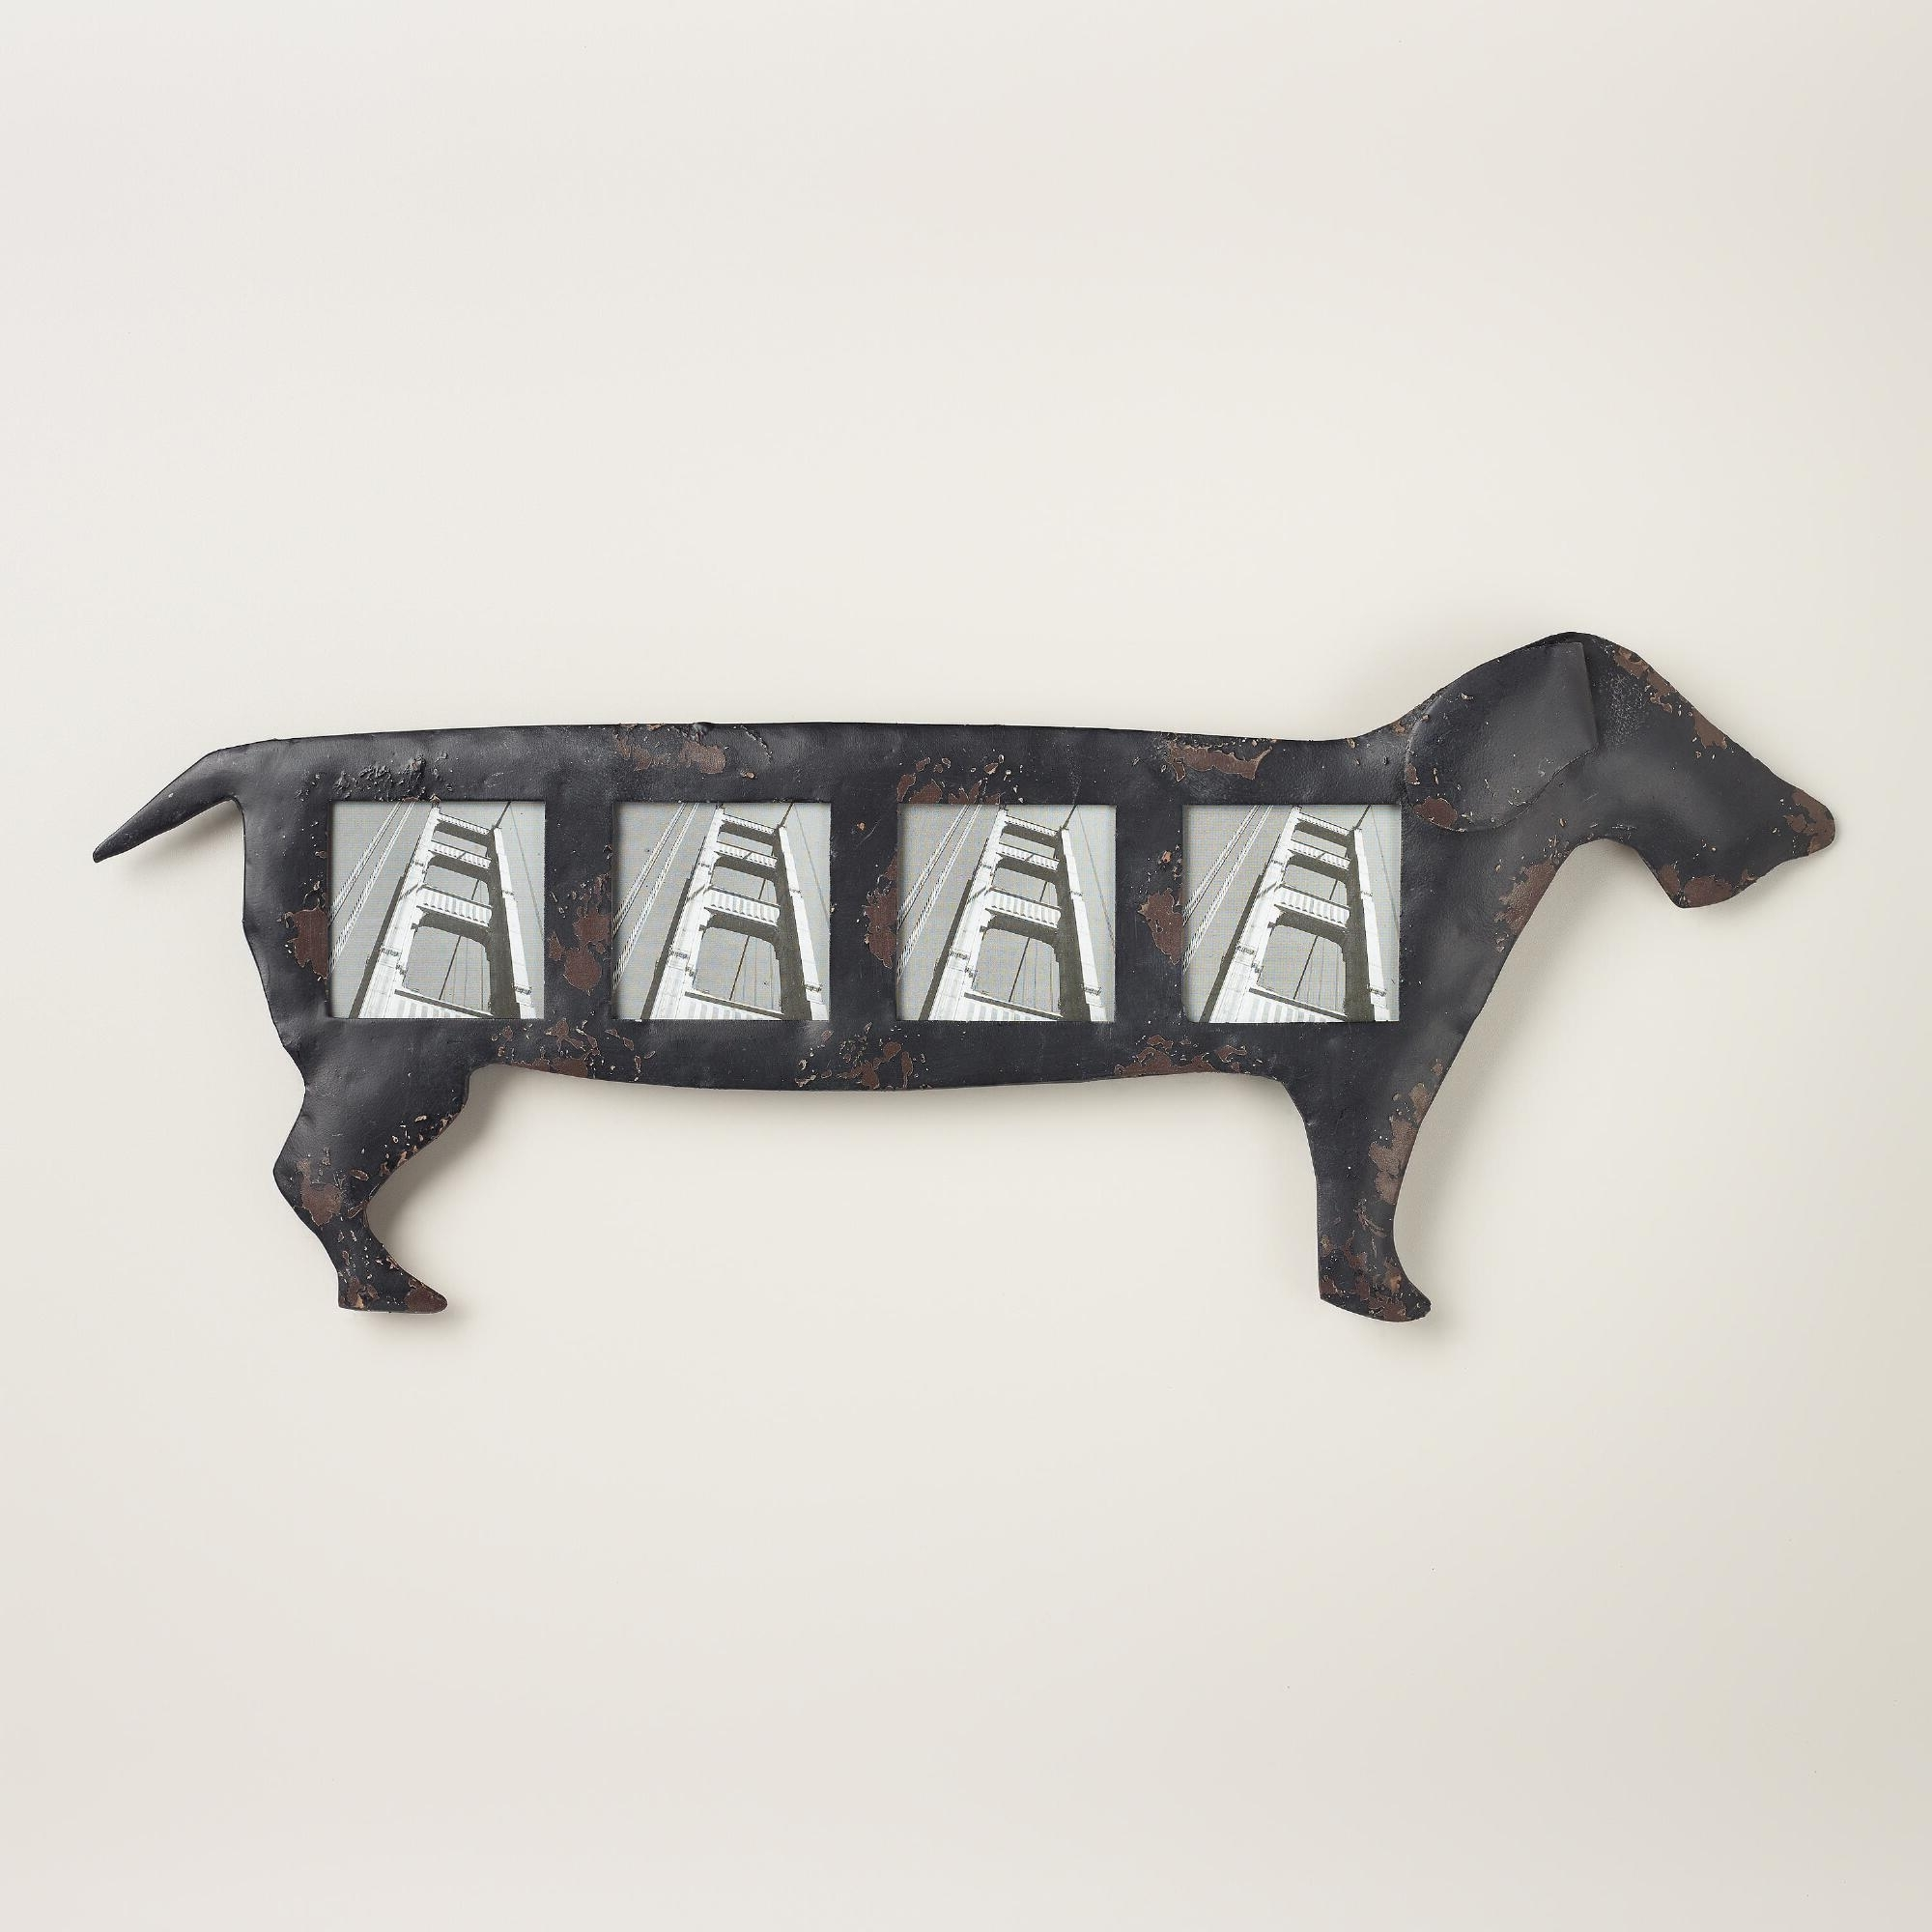 Widely Used Dachshund Wall Art In An Adorable Addition To Any Dog Lover's Home, Our Distressed Metal (View 12 of 15)